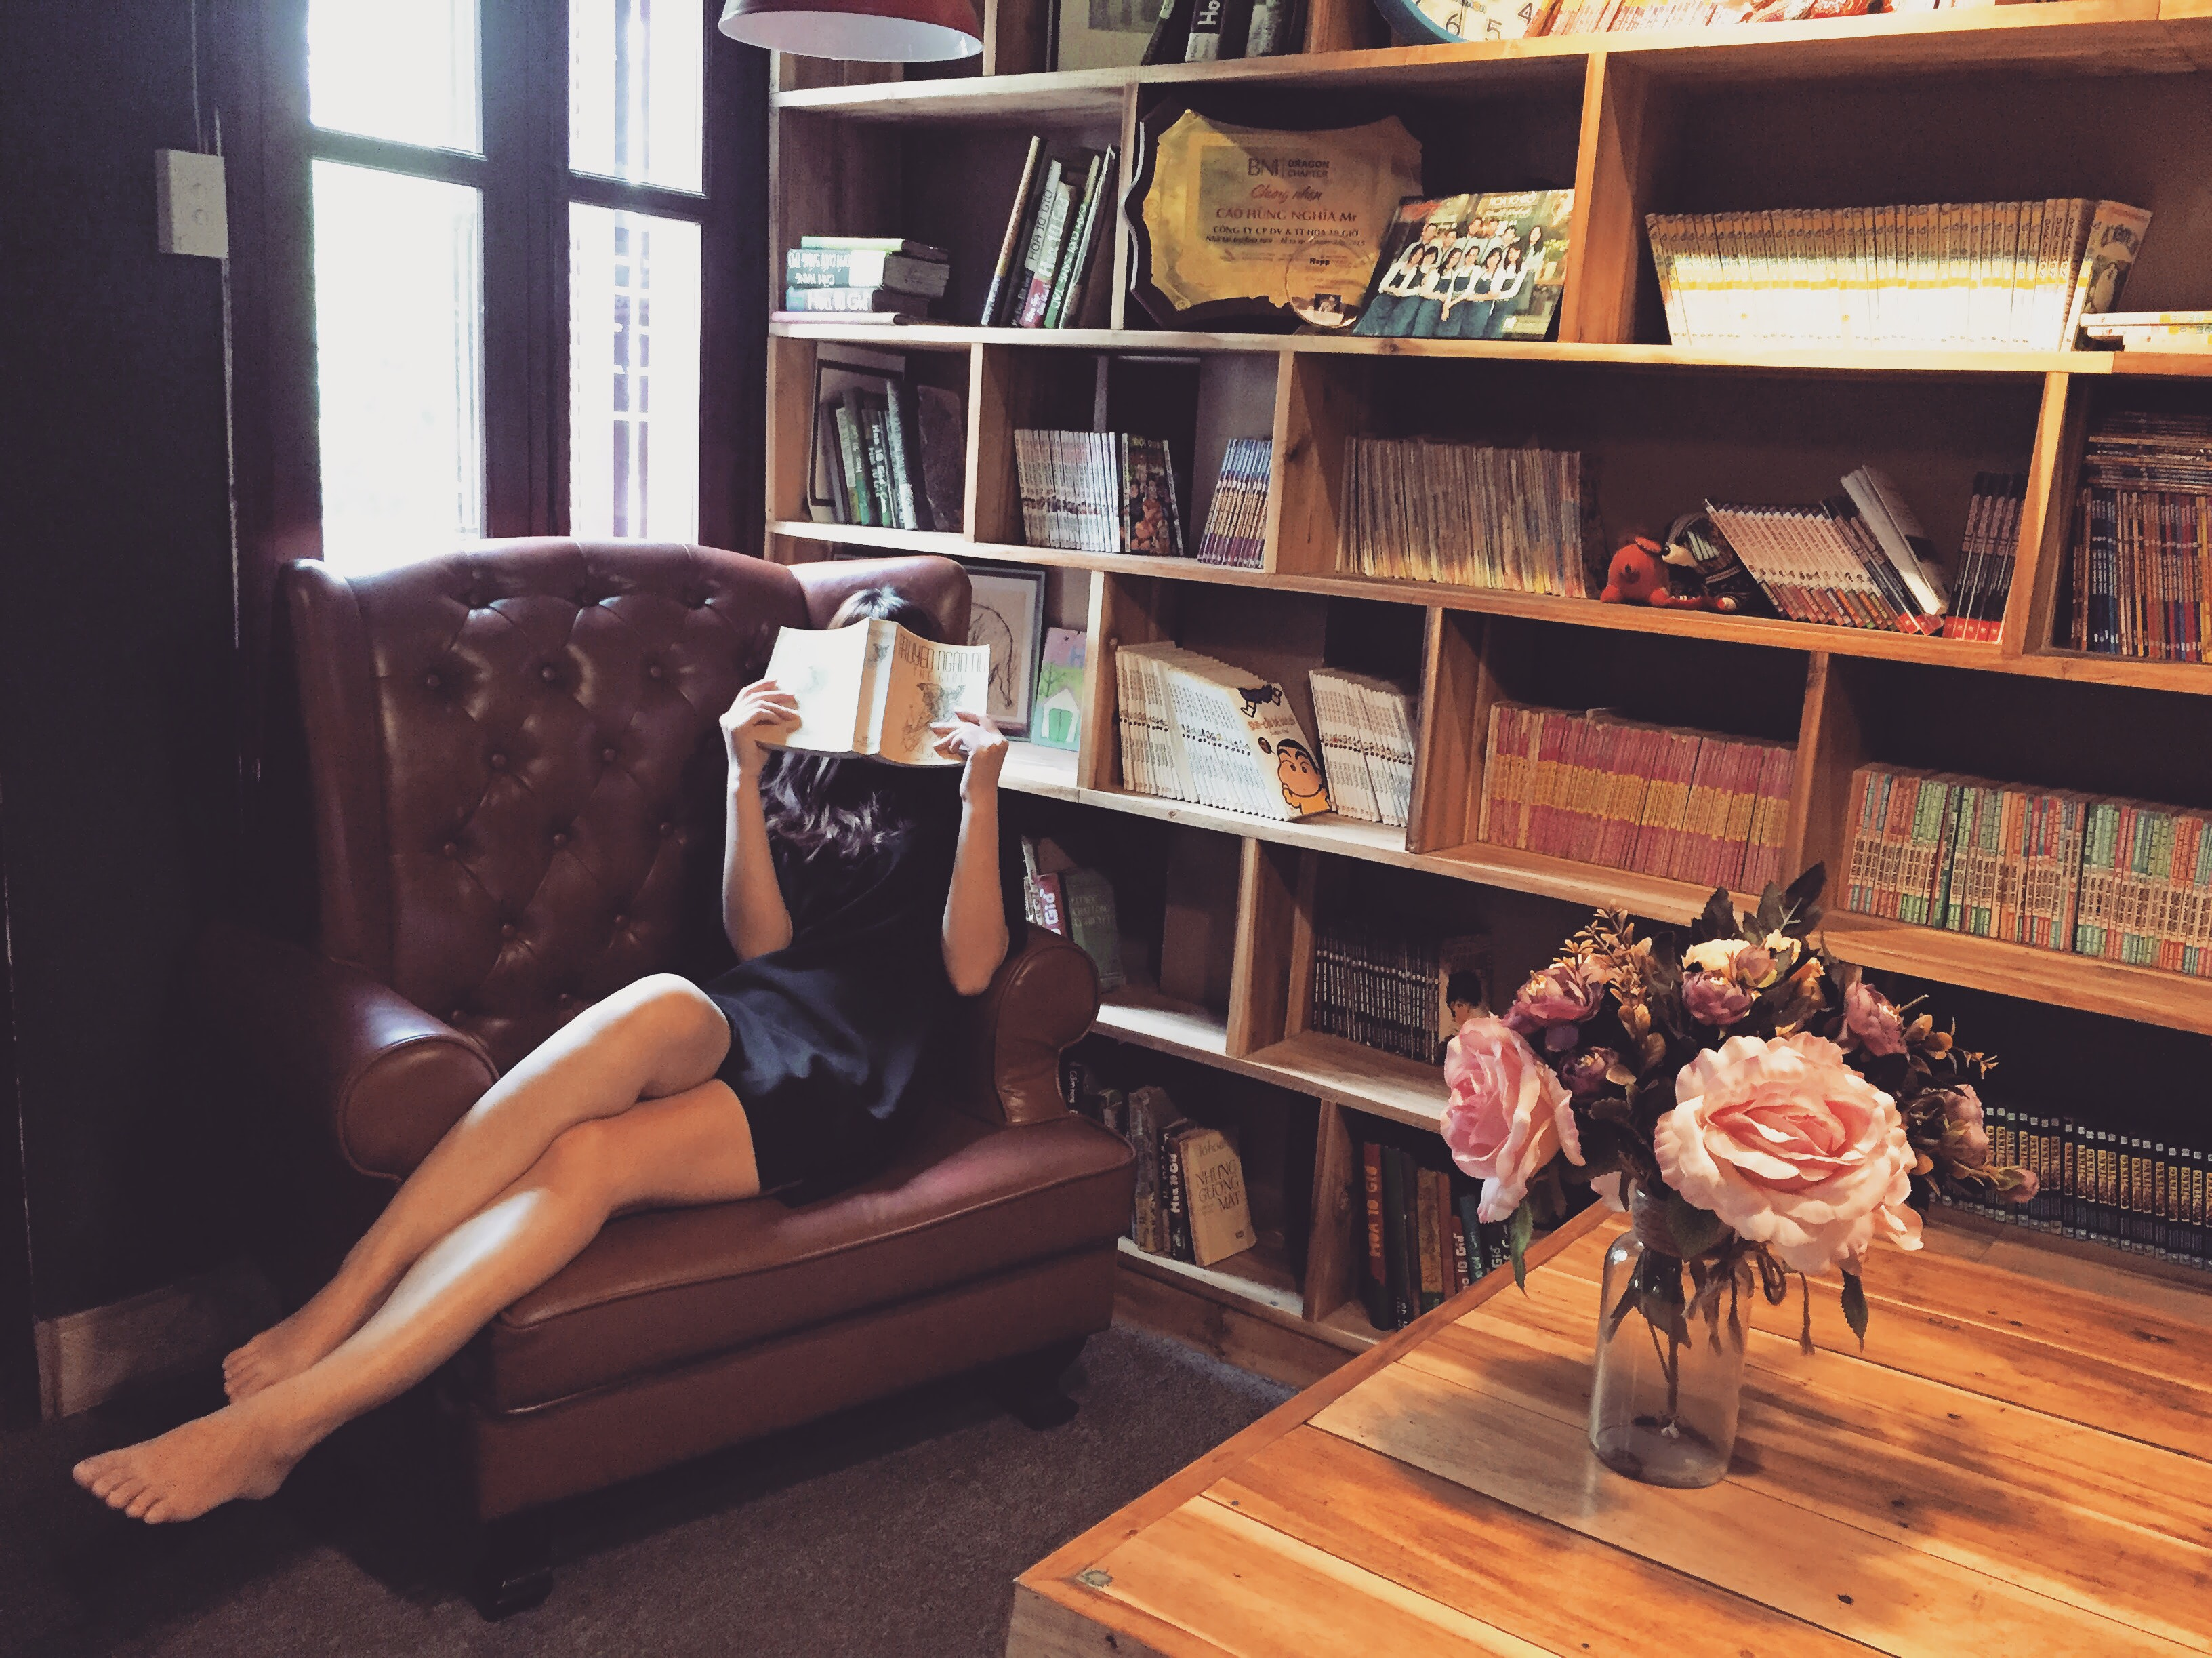 Woman In Black Mini Dress Sitting On Brown Leather Tufted Sofa Chair